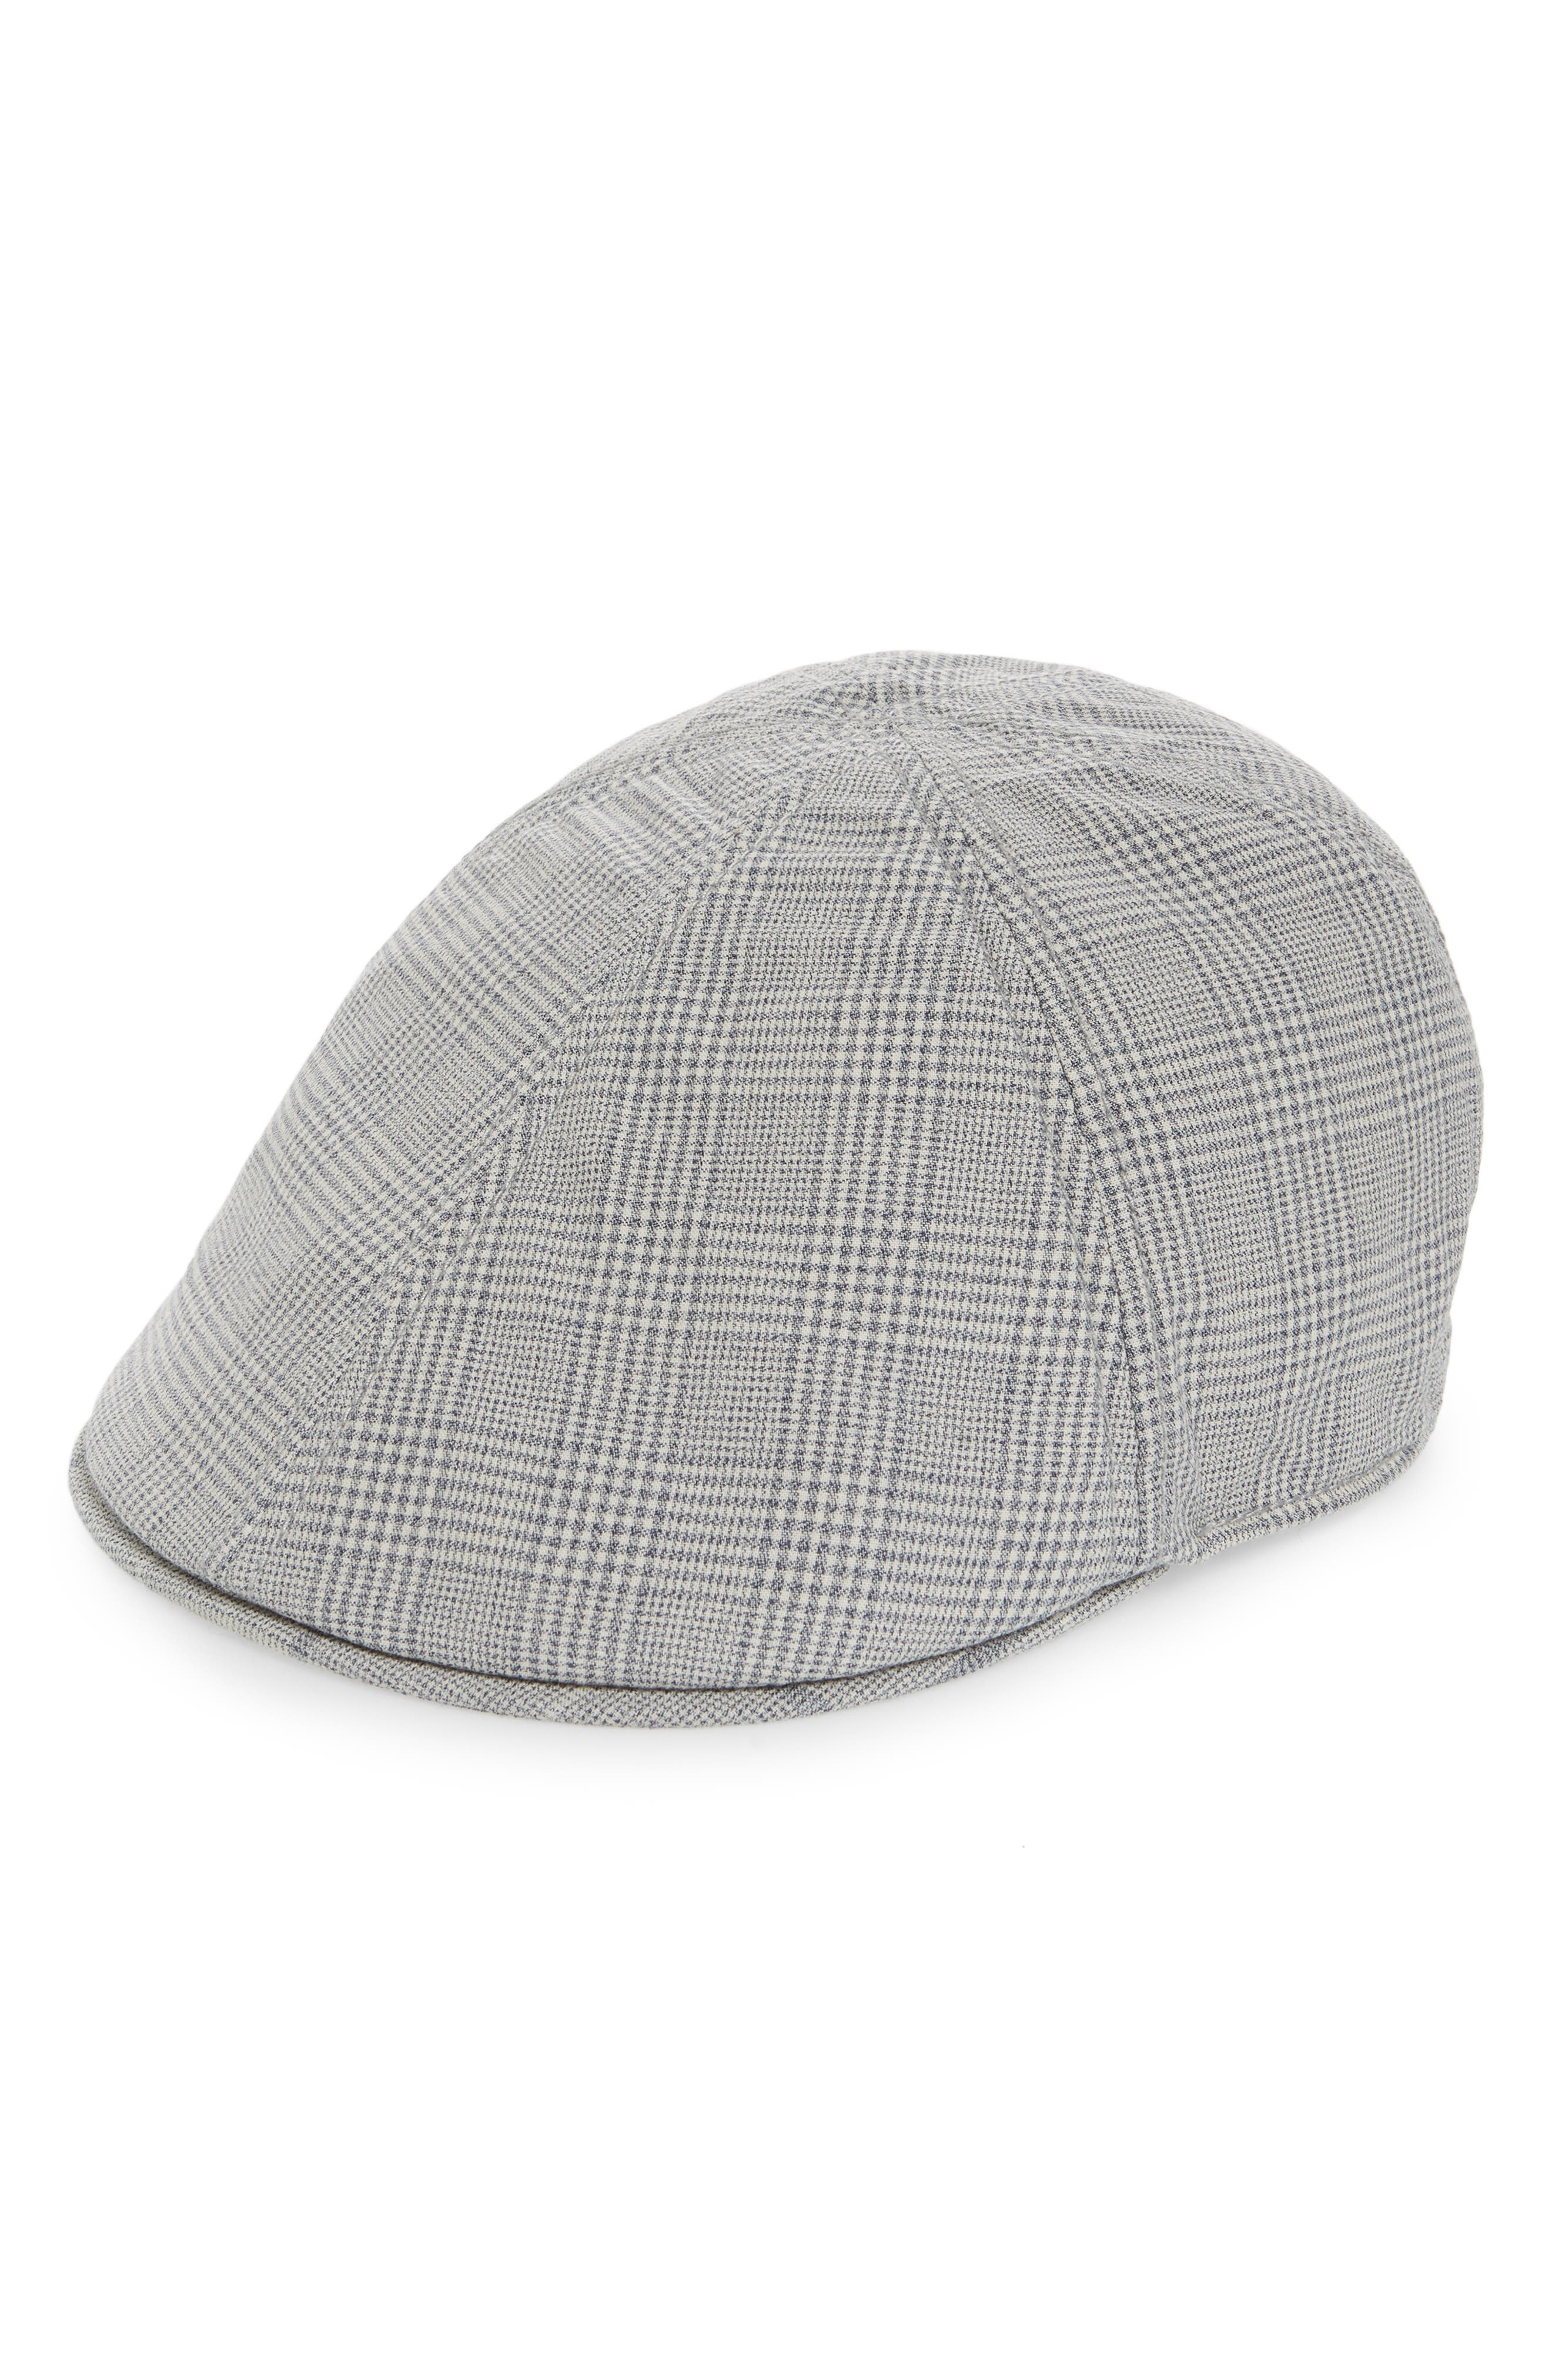 Hazy Days Glen Plaid Driving Cap, Main, color, GREY